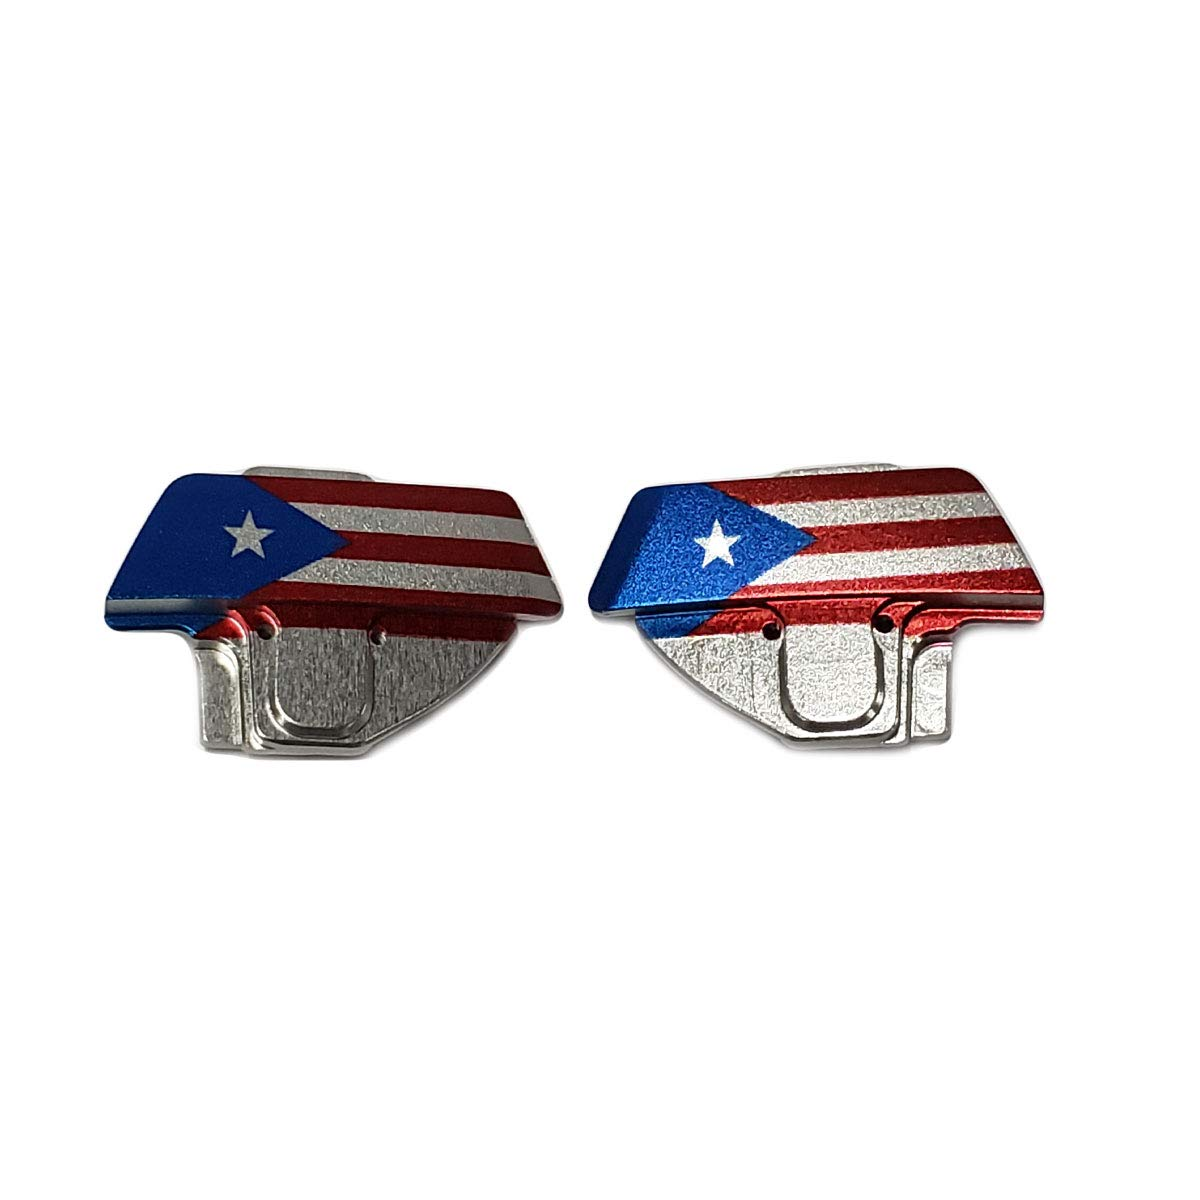 Planet Eclipse Eye Cover Kit - CS2 - Puerto Rico Flag by Planet Eclipse